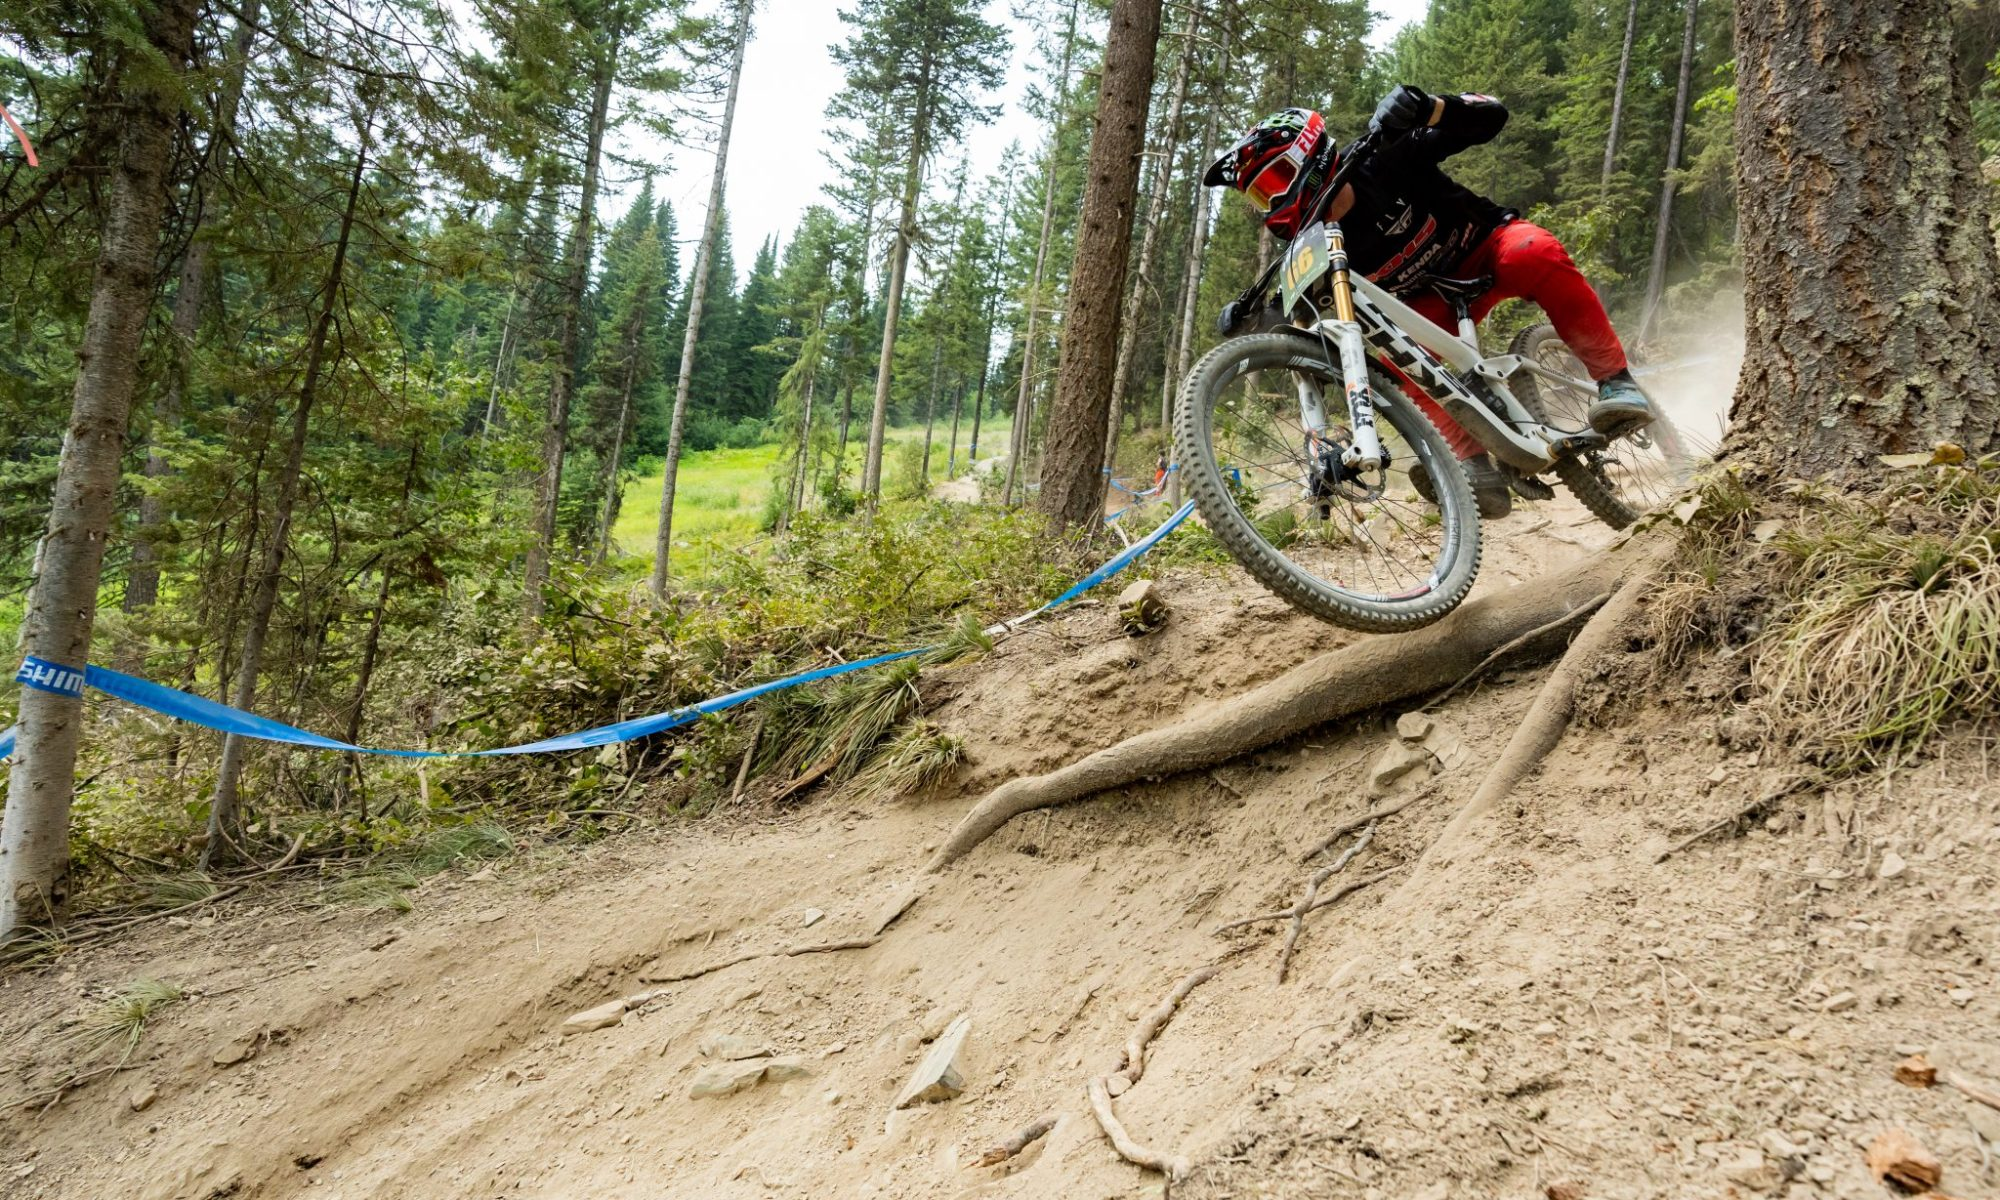 KHS Pro MTB rider Nik Nestoroff on track for his race run at the third stop of the Northwest Cup in Montana.